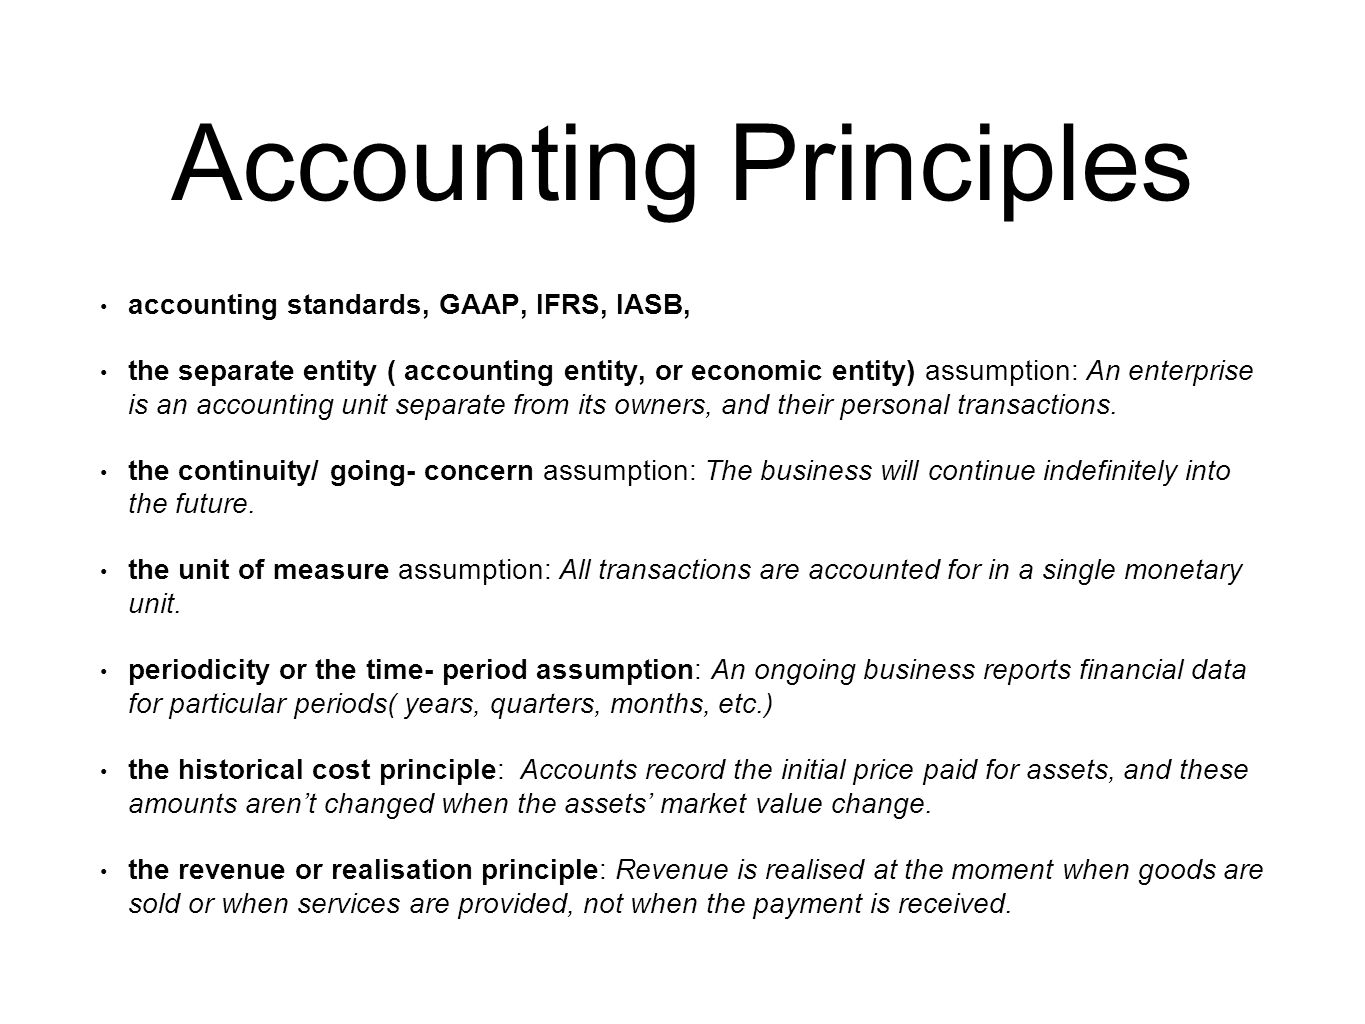 ifrs and gaap accounting principles essay